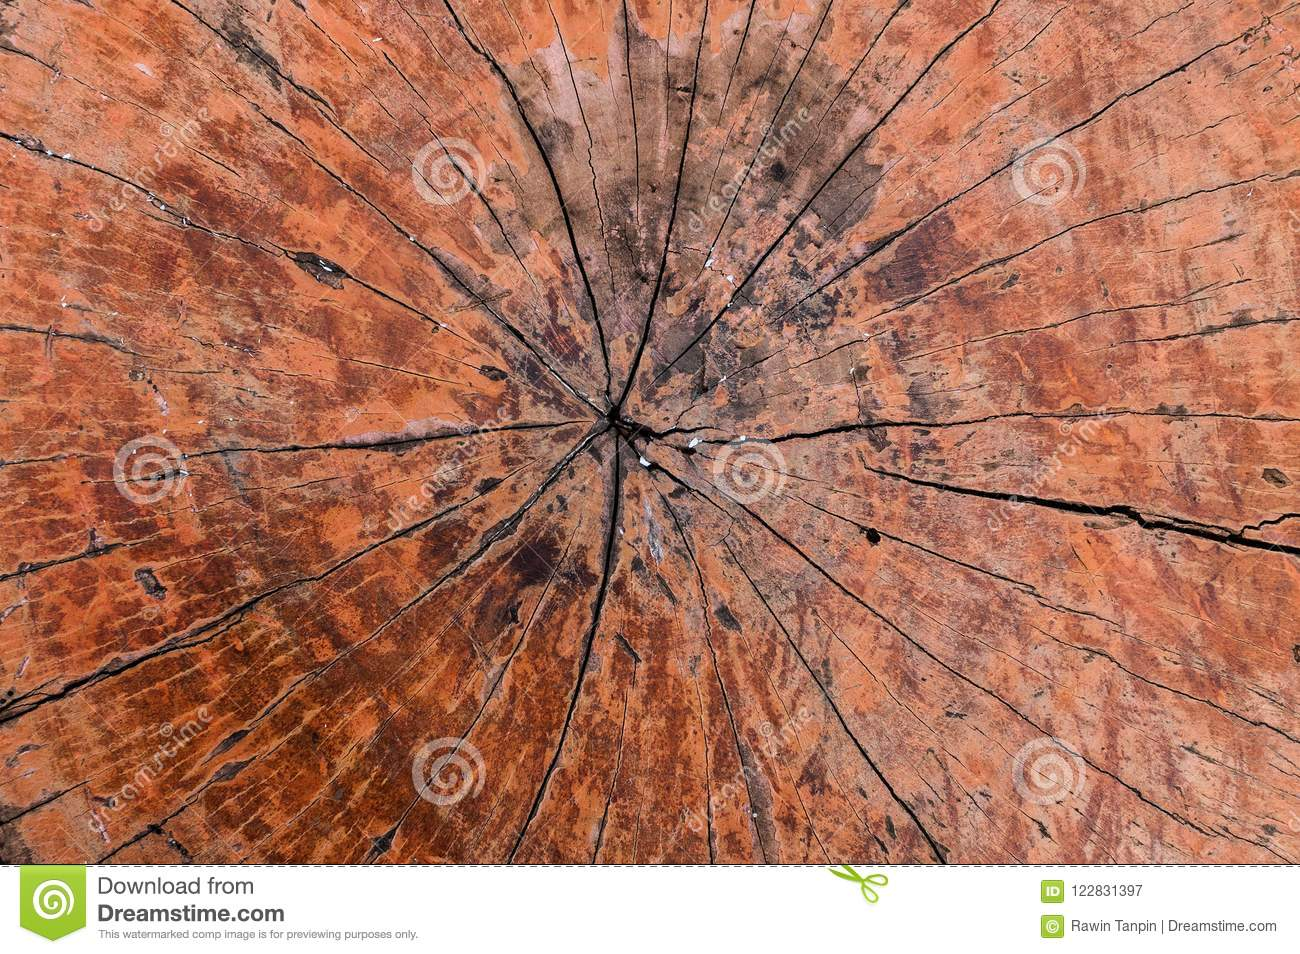 Tree rings old wood texture background,Cross section annual ring